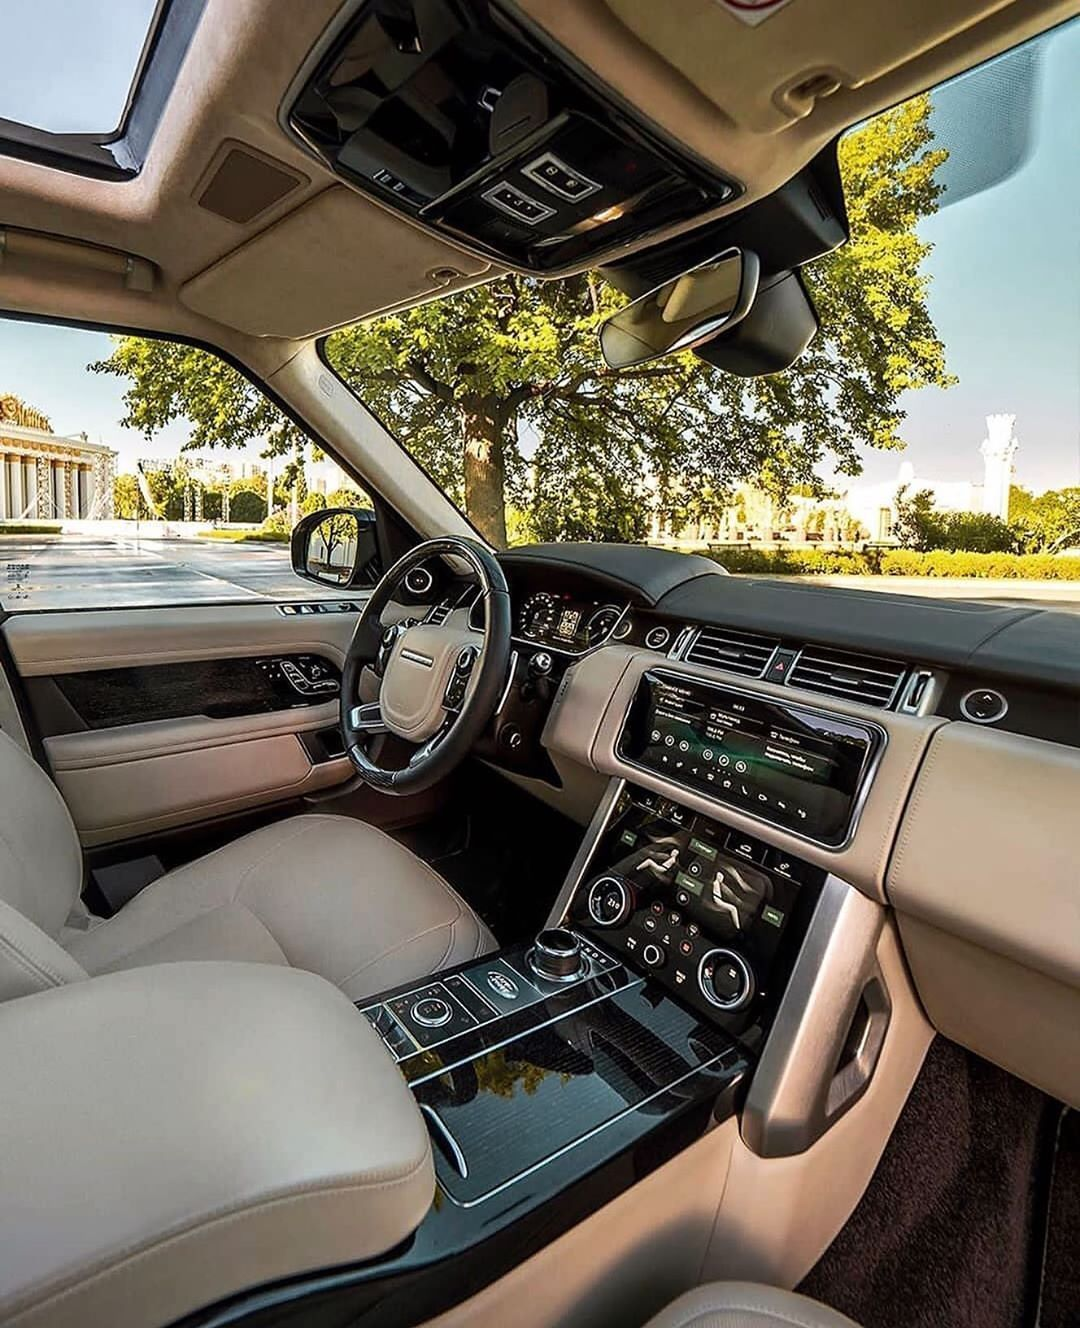 Land Rover Range Rover in 2020 Luxury cars range rover